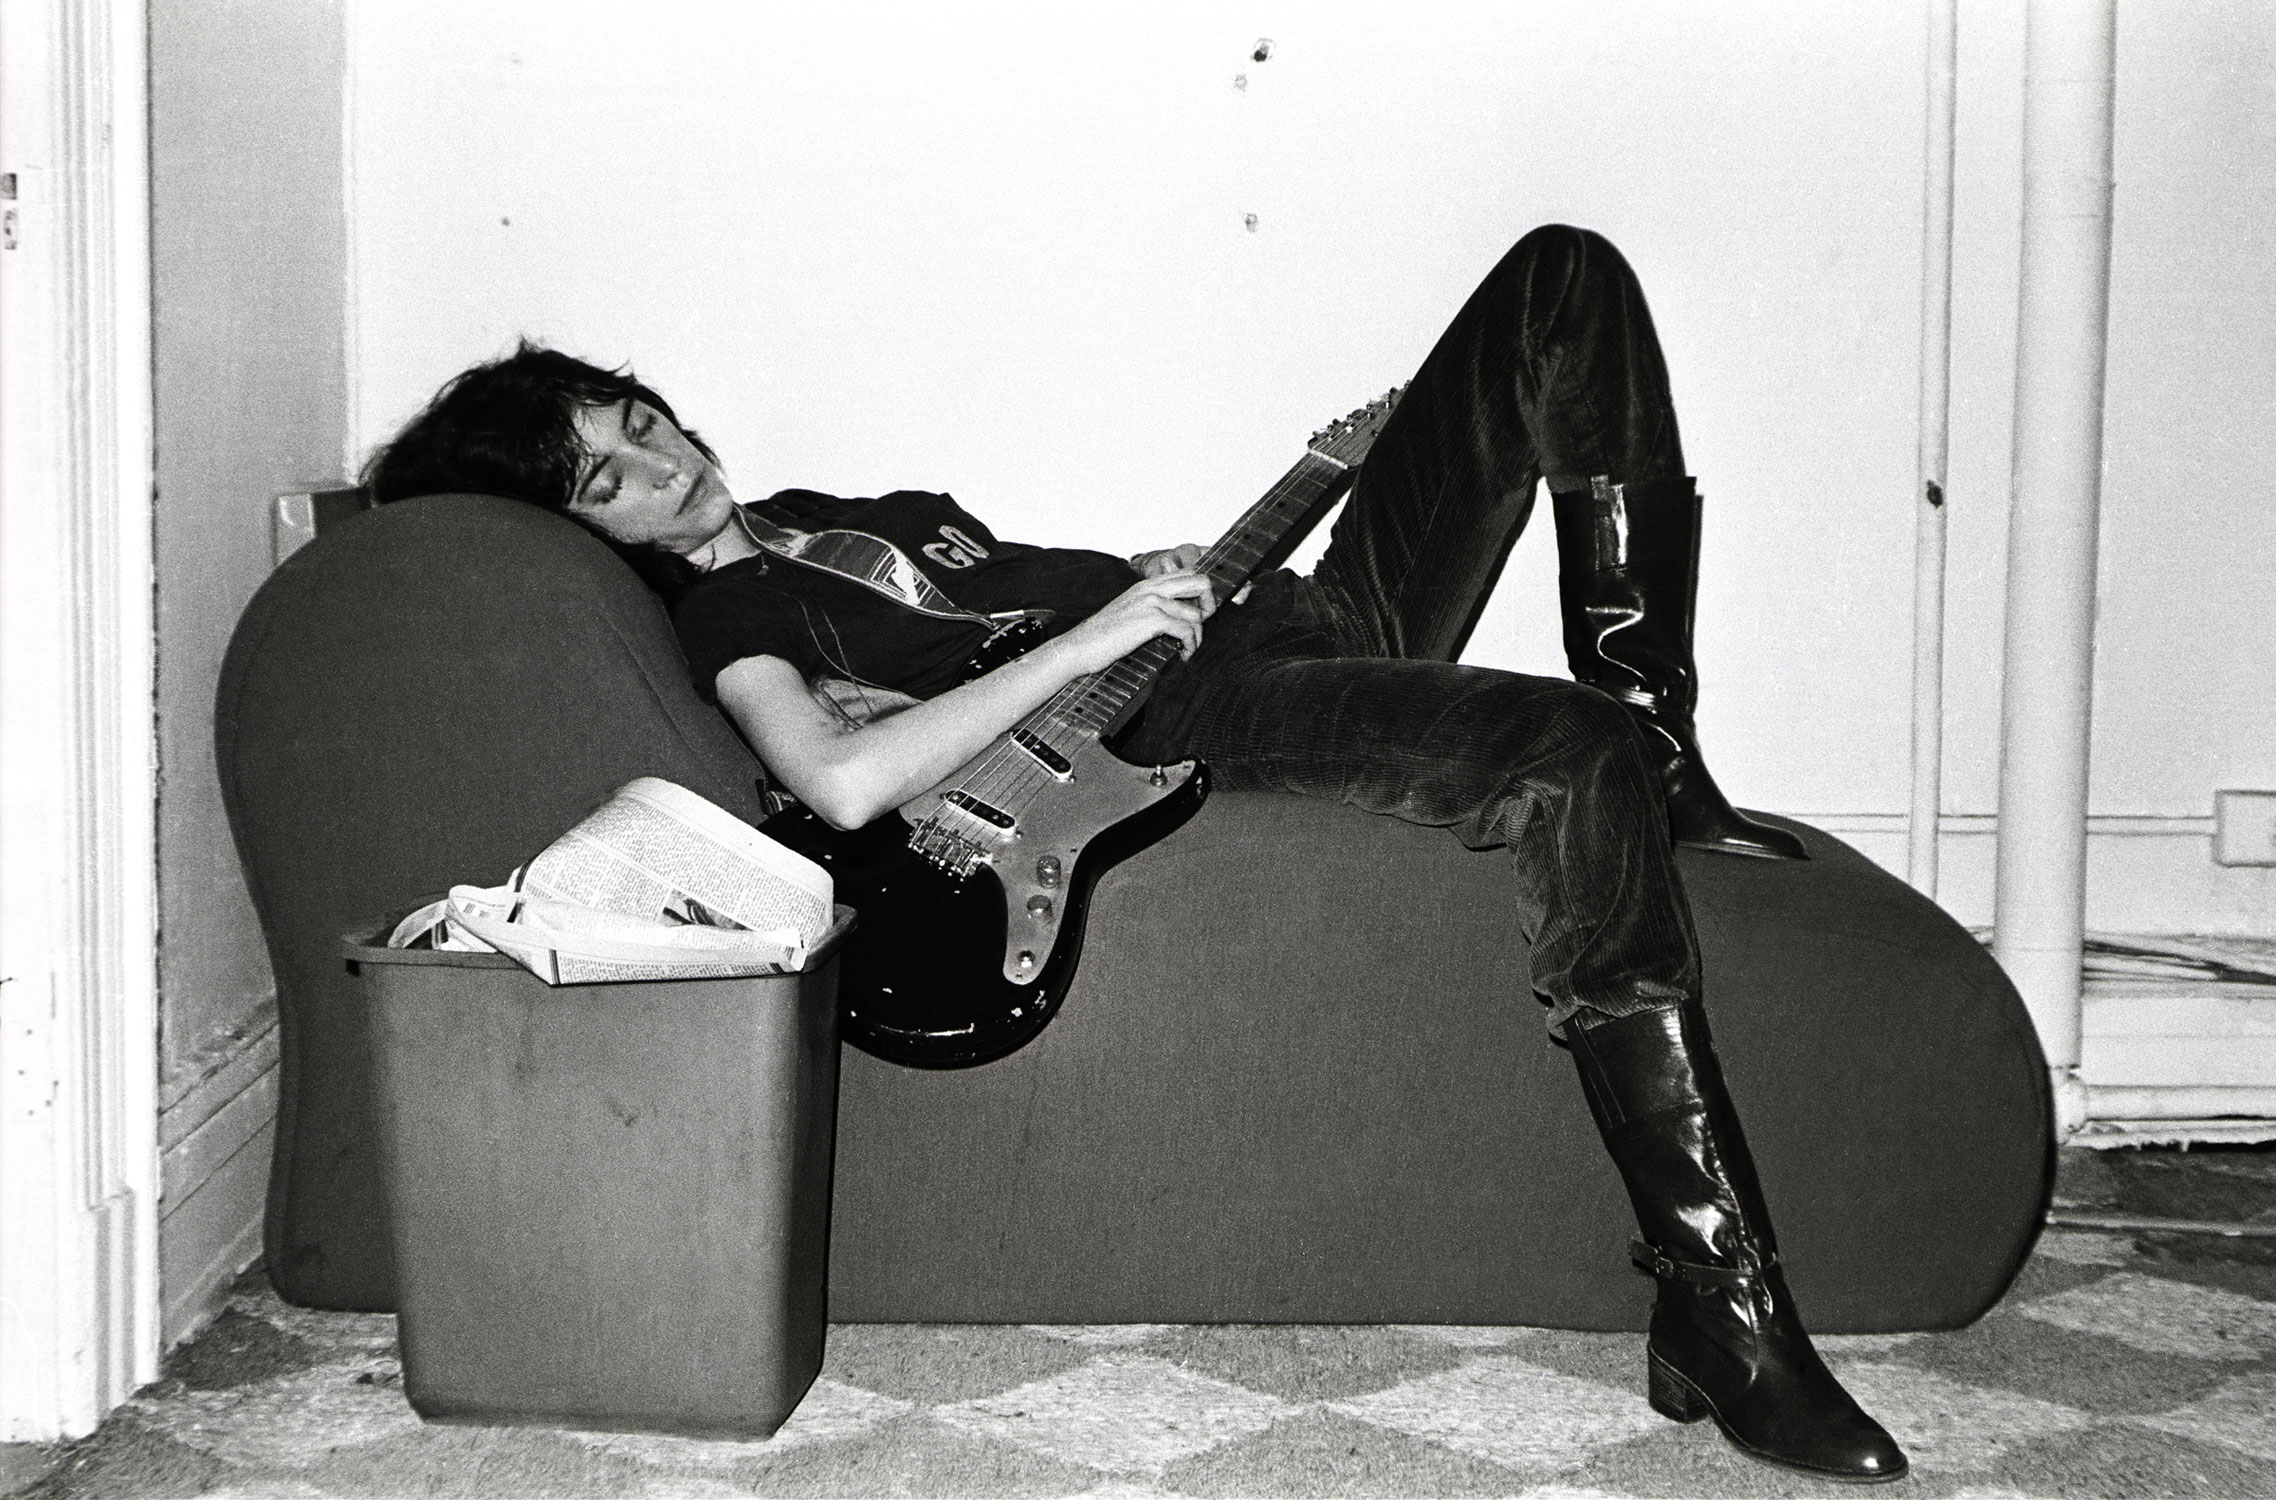 Taking a nap with her first electric guitar, a Fender Duo-Sonic, while rehearsing for a tour, 1976